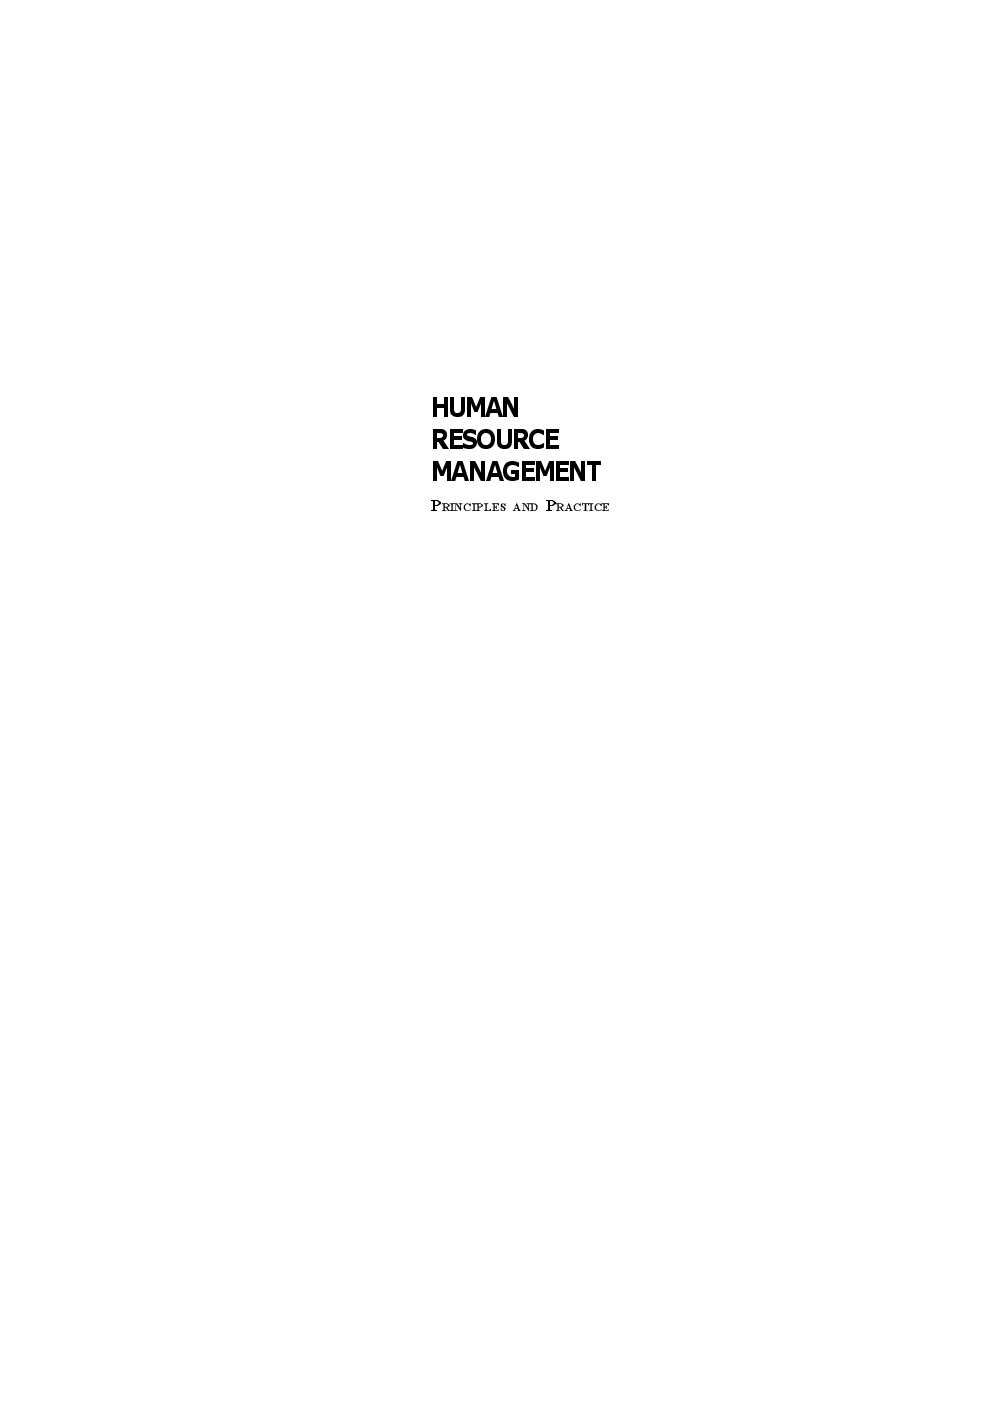 Download human resource management principles and practice by view sample fandeluxe Gallery